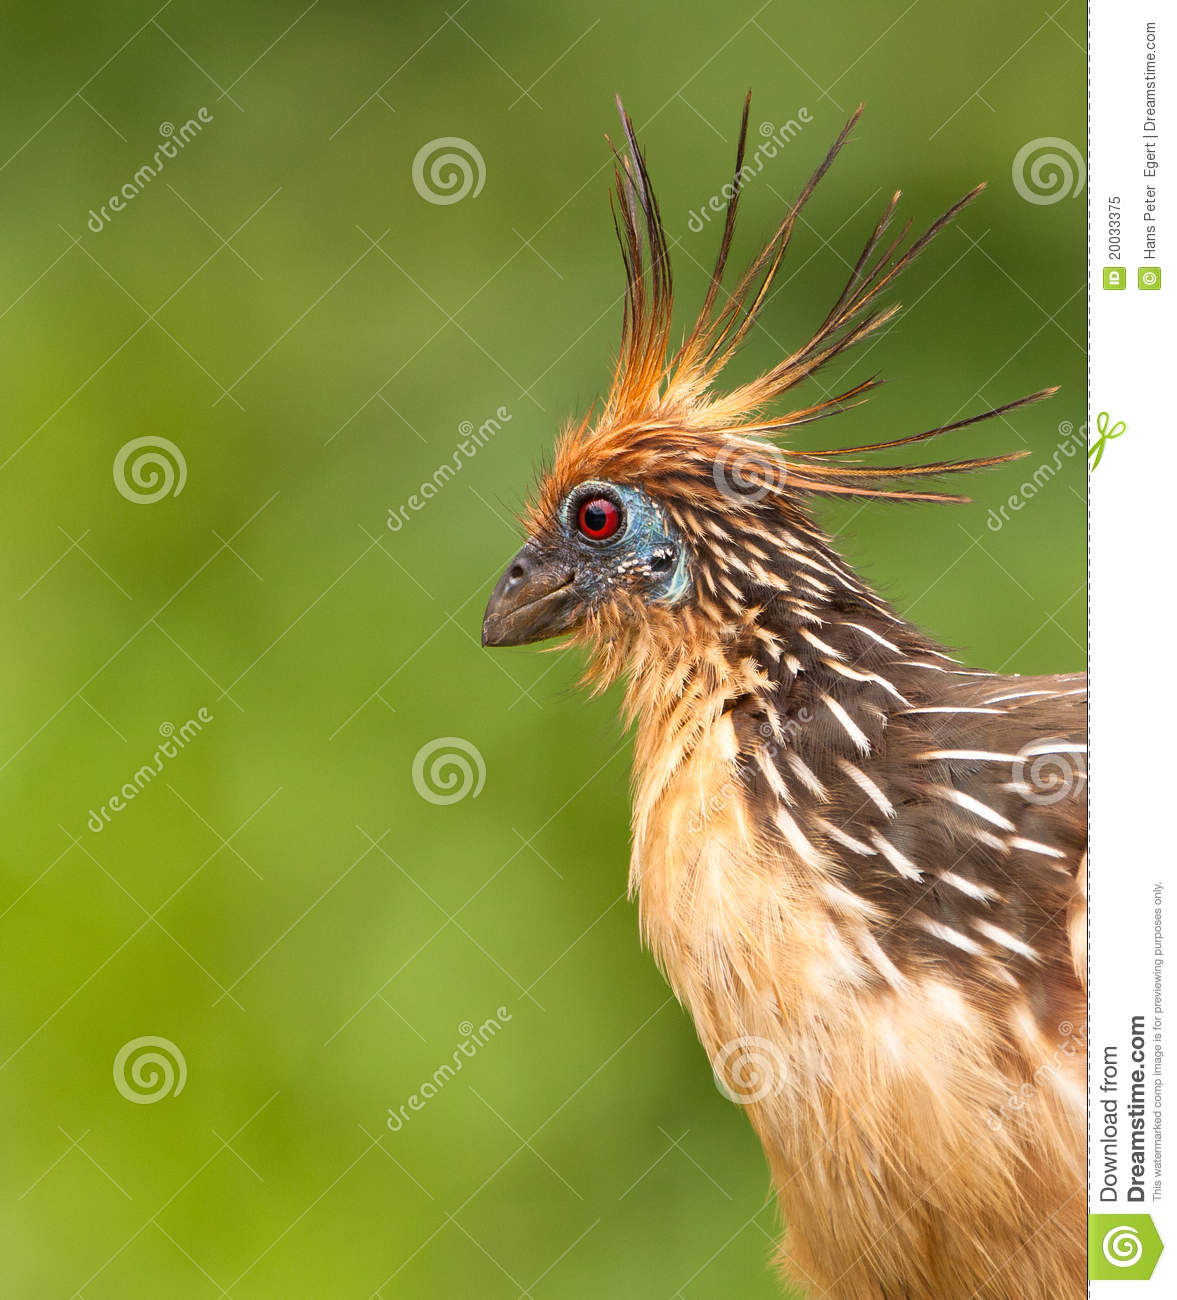 Retrato do Hoatzin singular